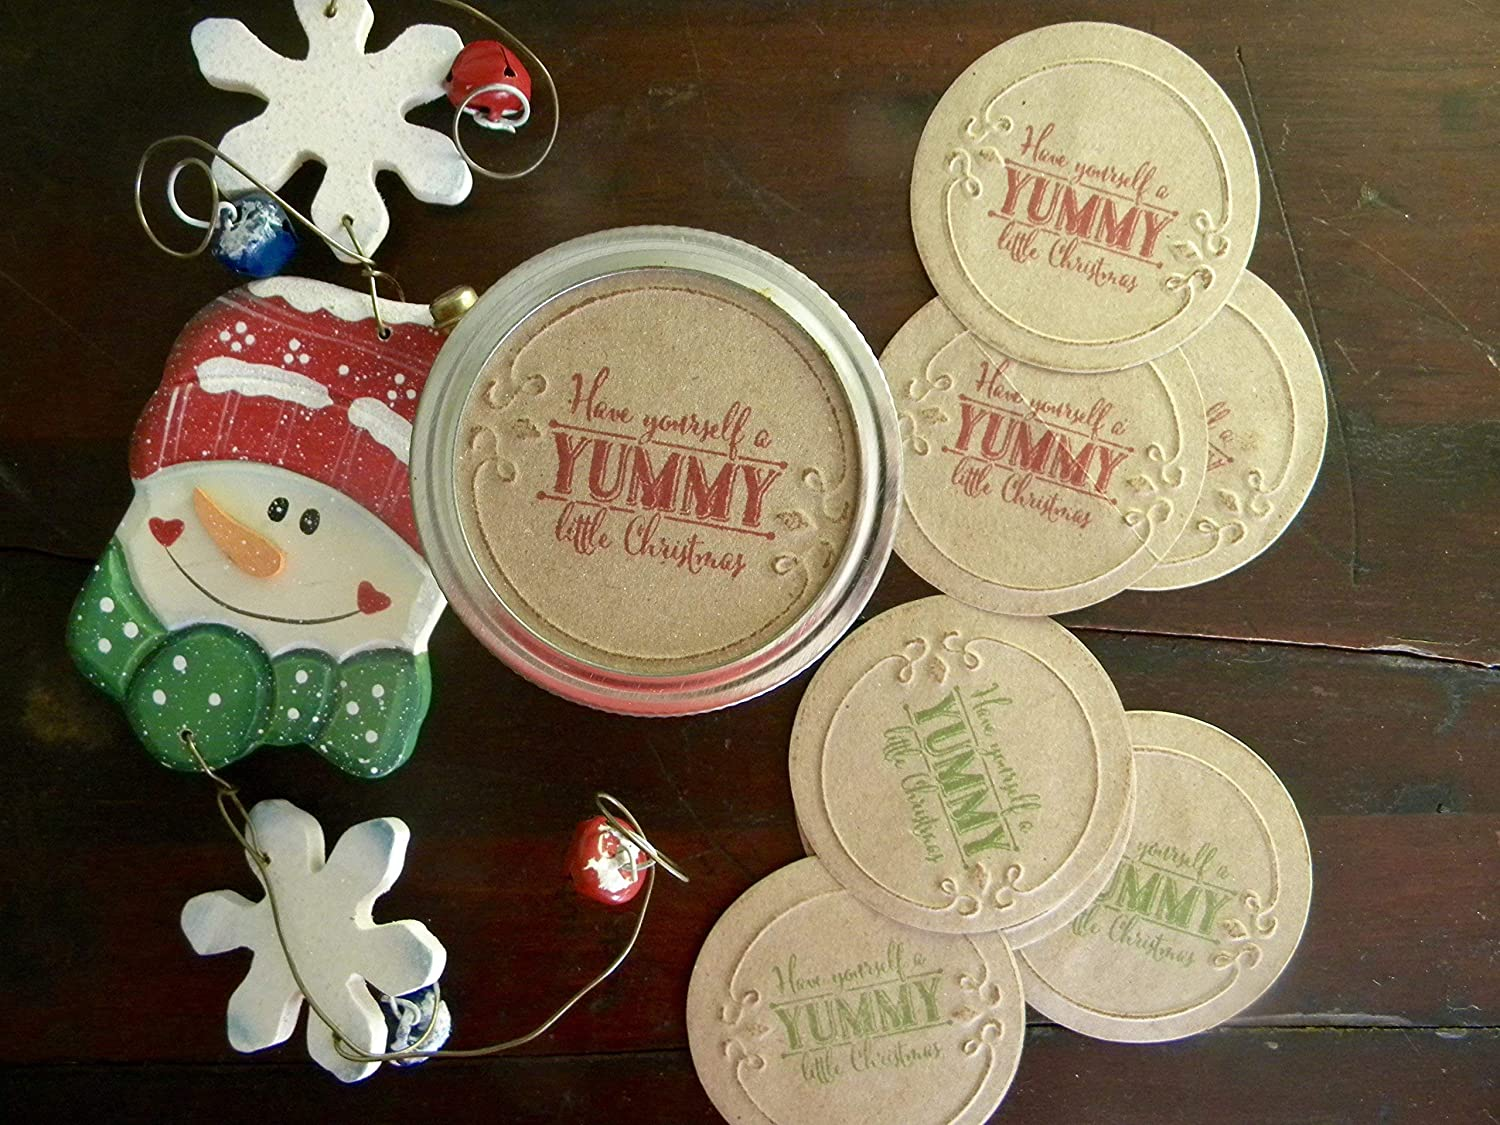 Family Recipe Canning Jar Stickers Lid Inserts Jar Toppers Christmas Jar Stickers Mason Jar Labels Holiday Gifts Secret Recipe